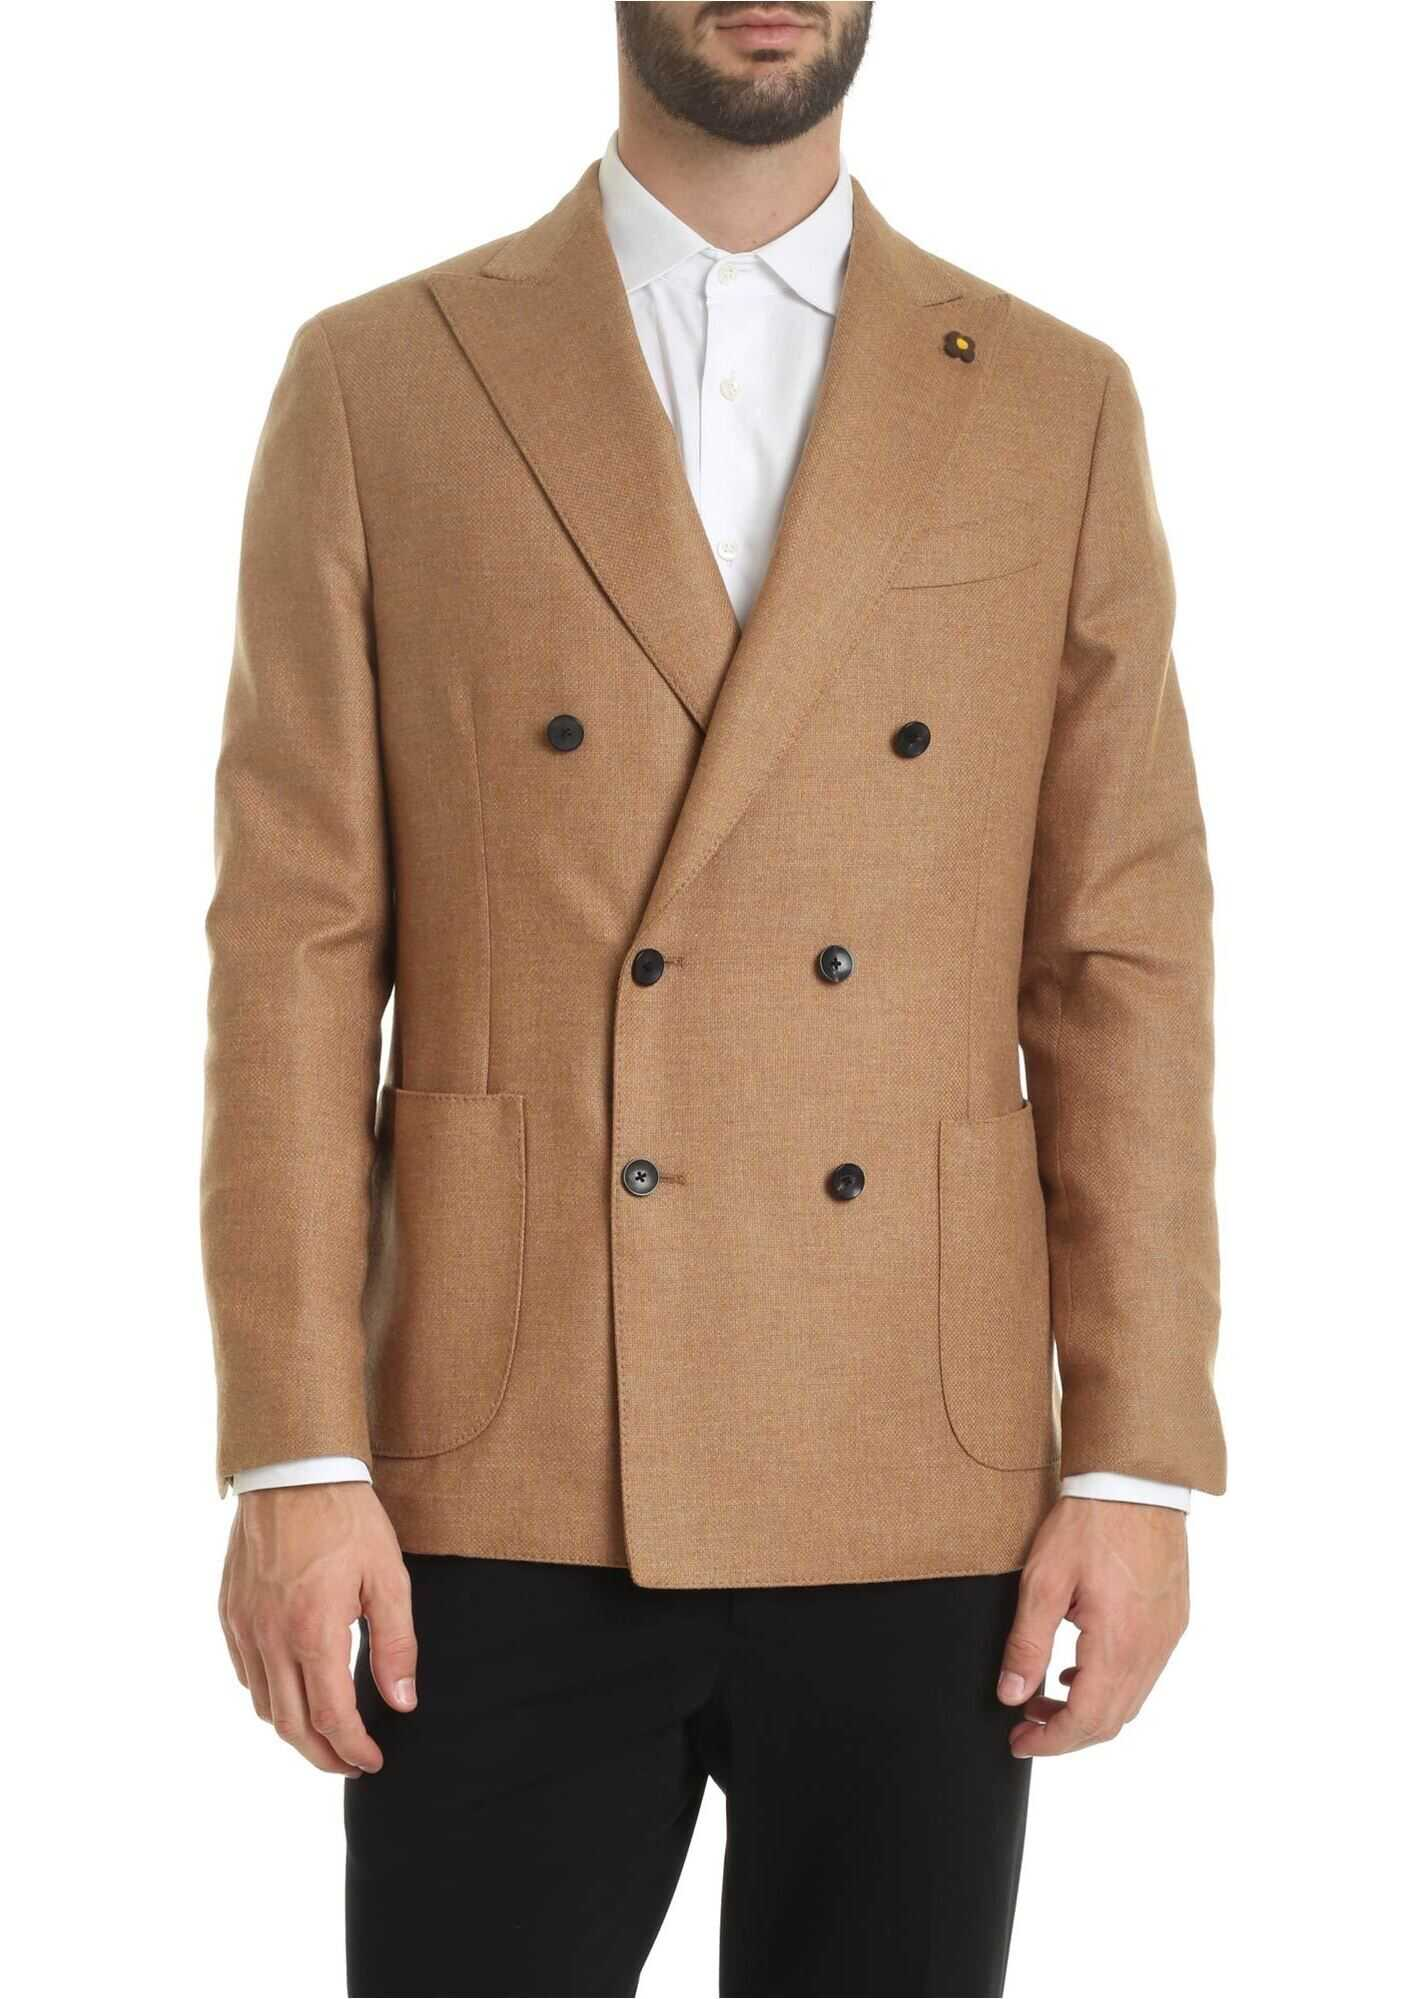 Lardini Double-Breasted Jacket In Camel Color Camel